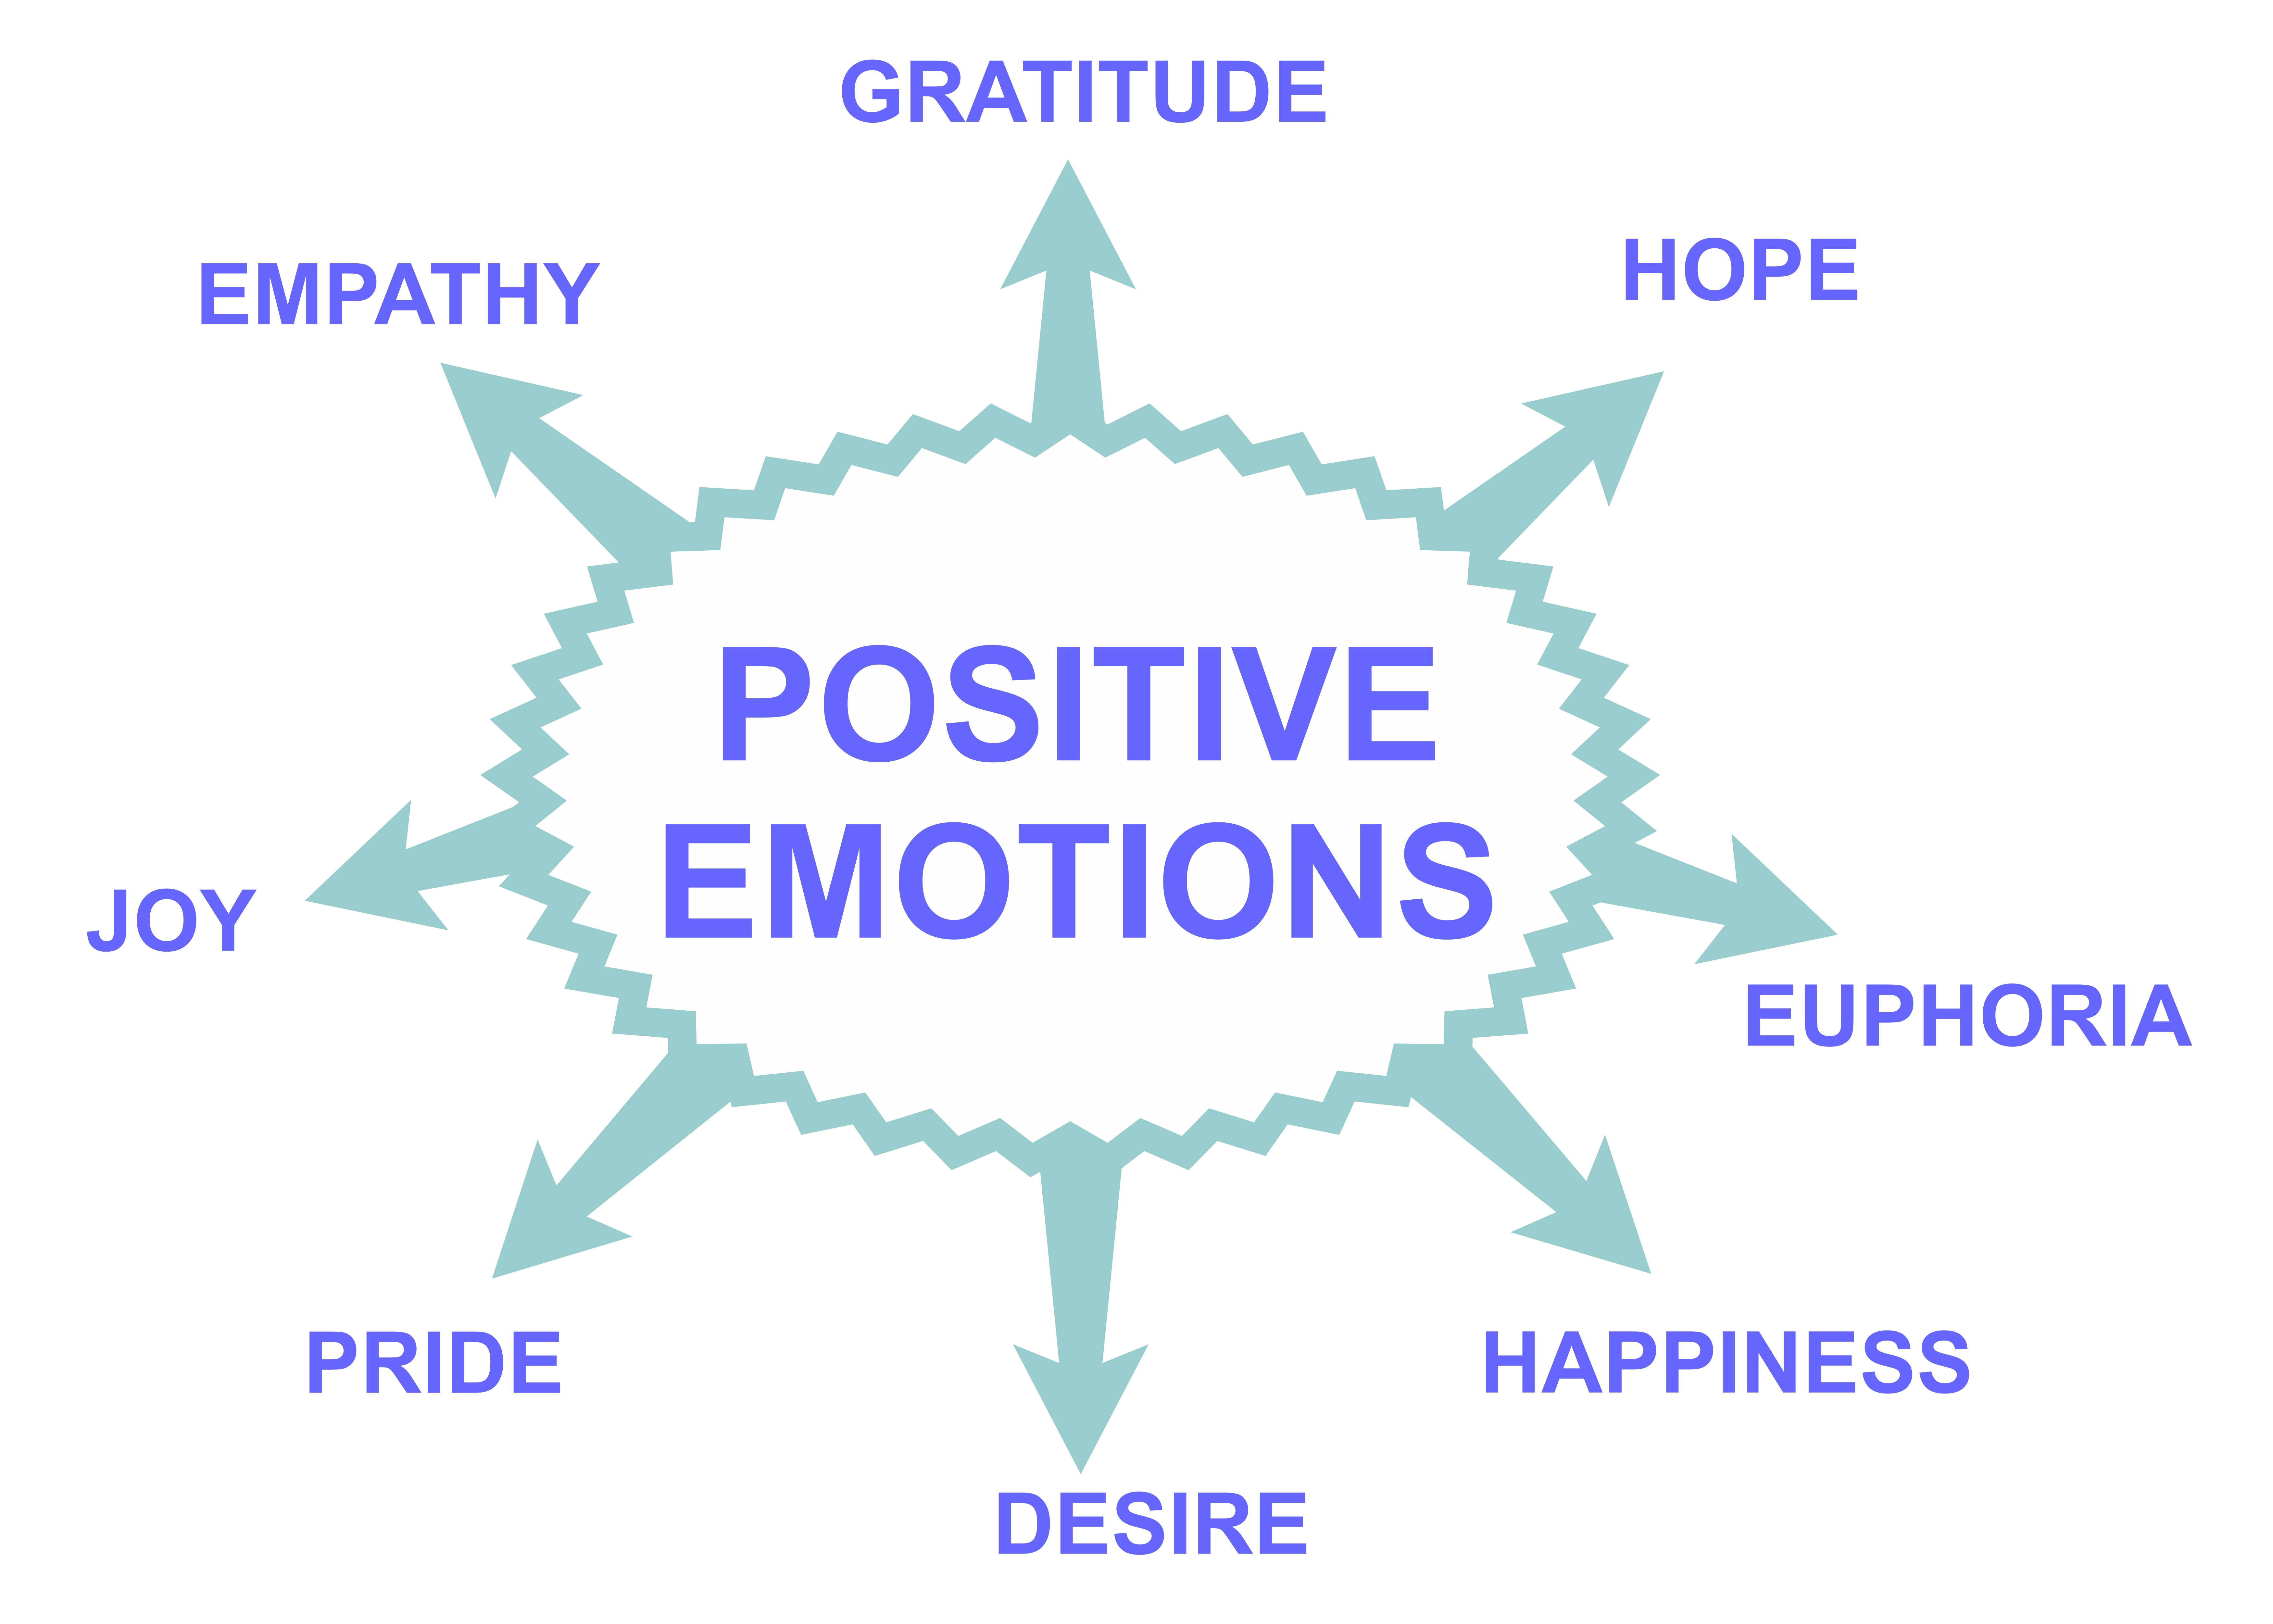 positive emotions Dr barbara fredrickson has been researching positive emotions for decades her work, along with the research of her colleagues, has shed light on how and why positive emotions are good for us.